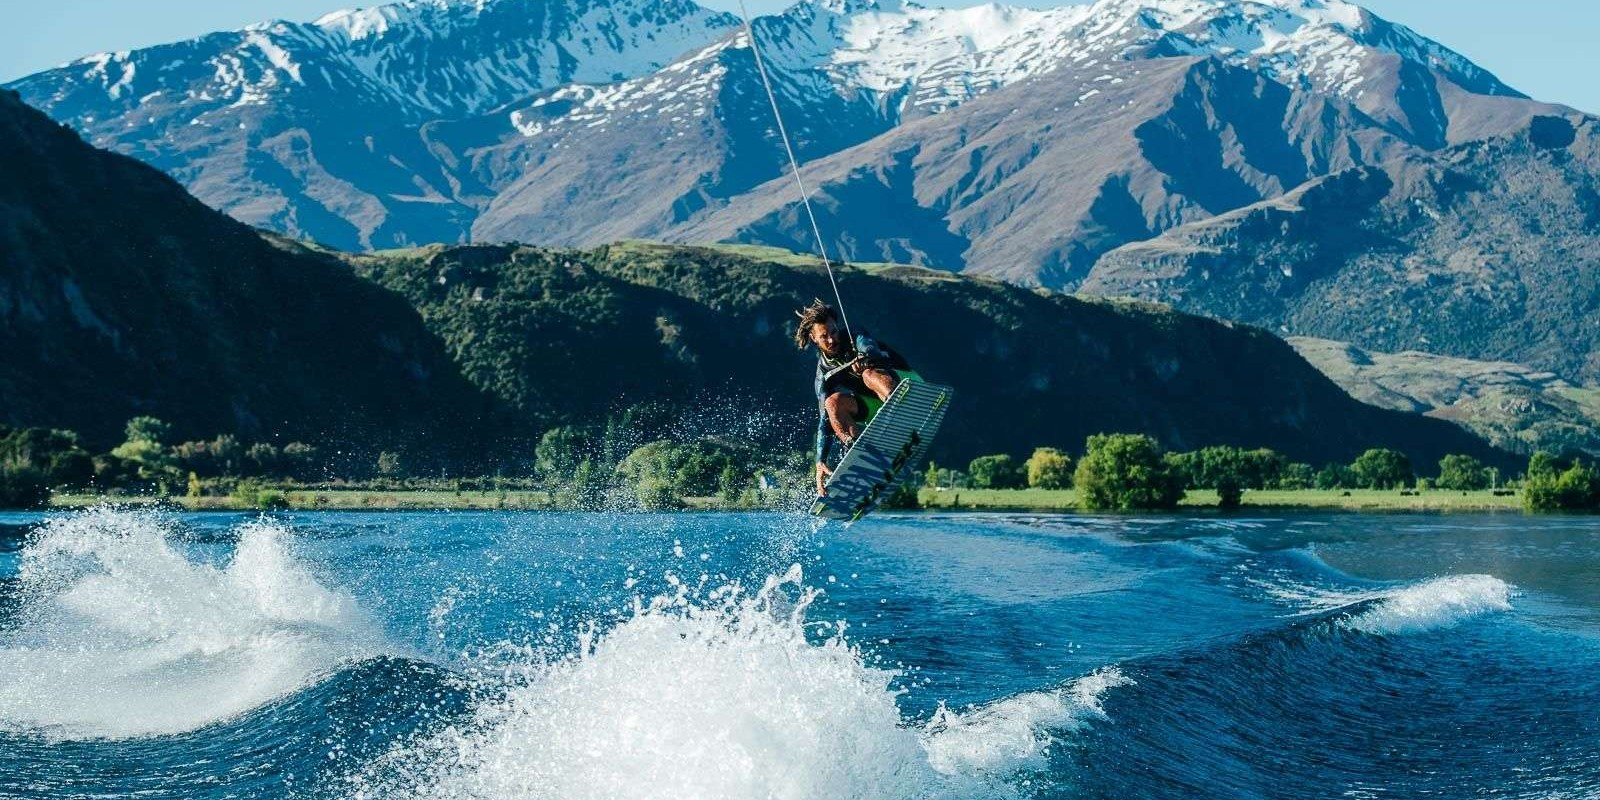 LIVE+ wakeboarding shoot in NZ. Rights Expire 1st November 2020. Digital and social channels exclusive. Any images for print will need to purchase another license.